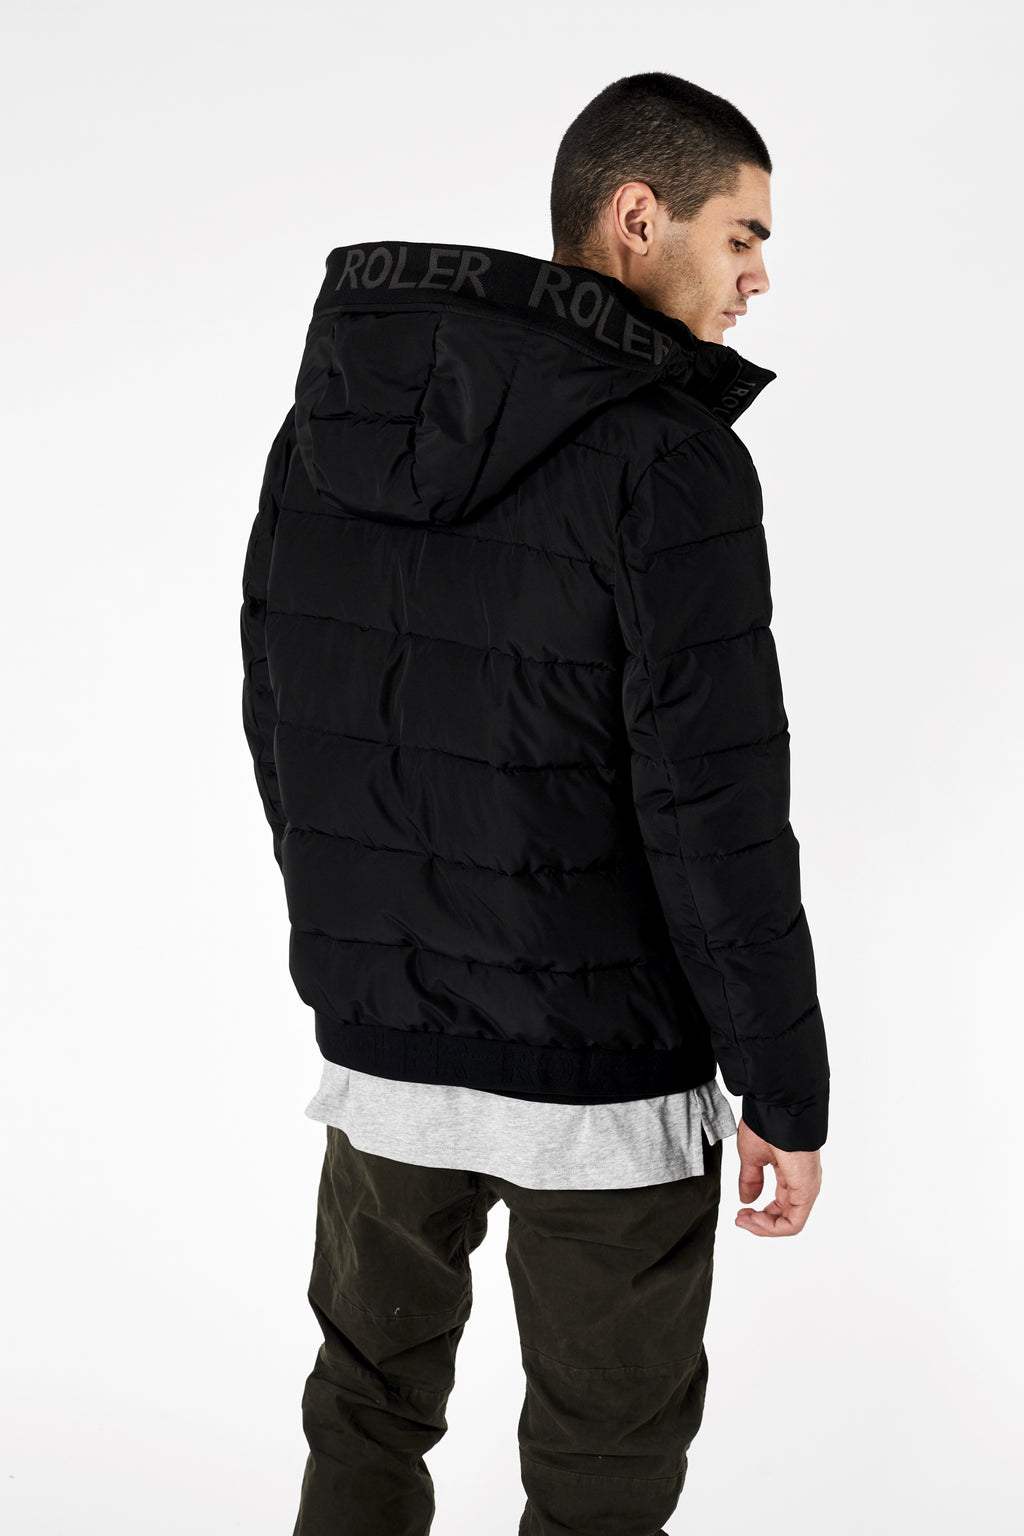 The Saldano Jacket - Black - Roler Clothing